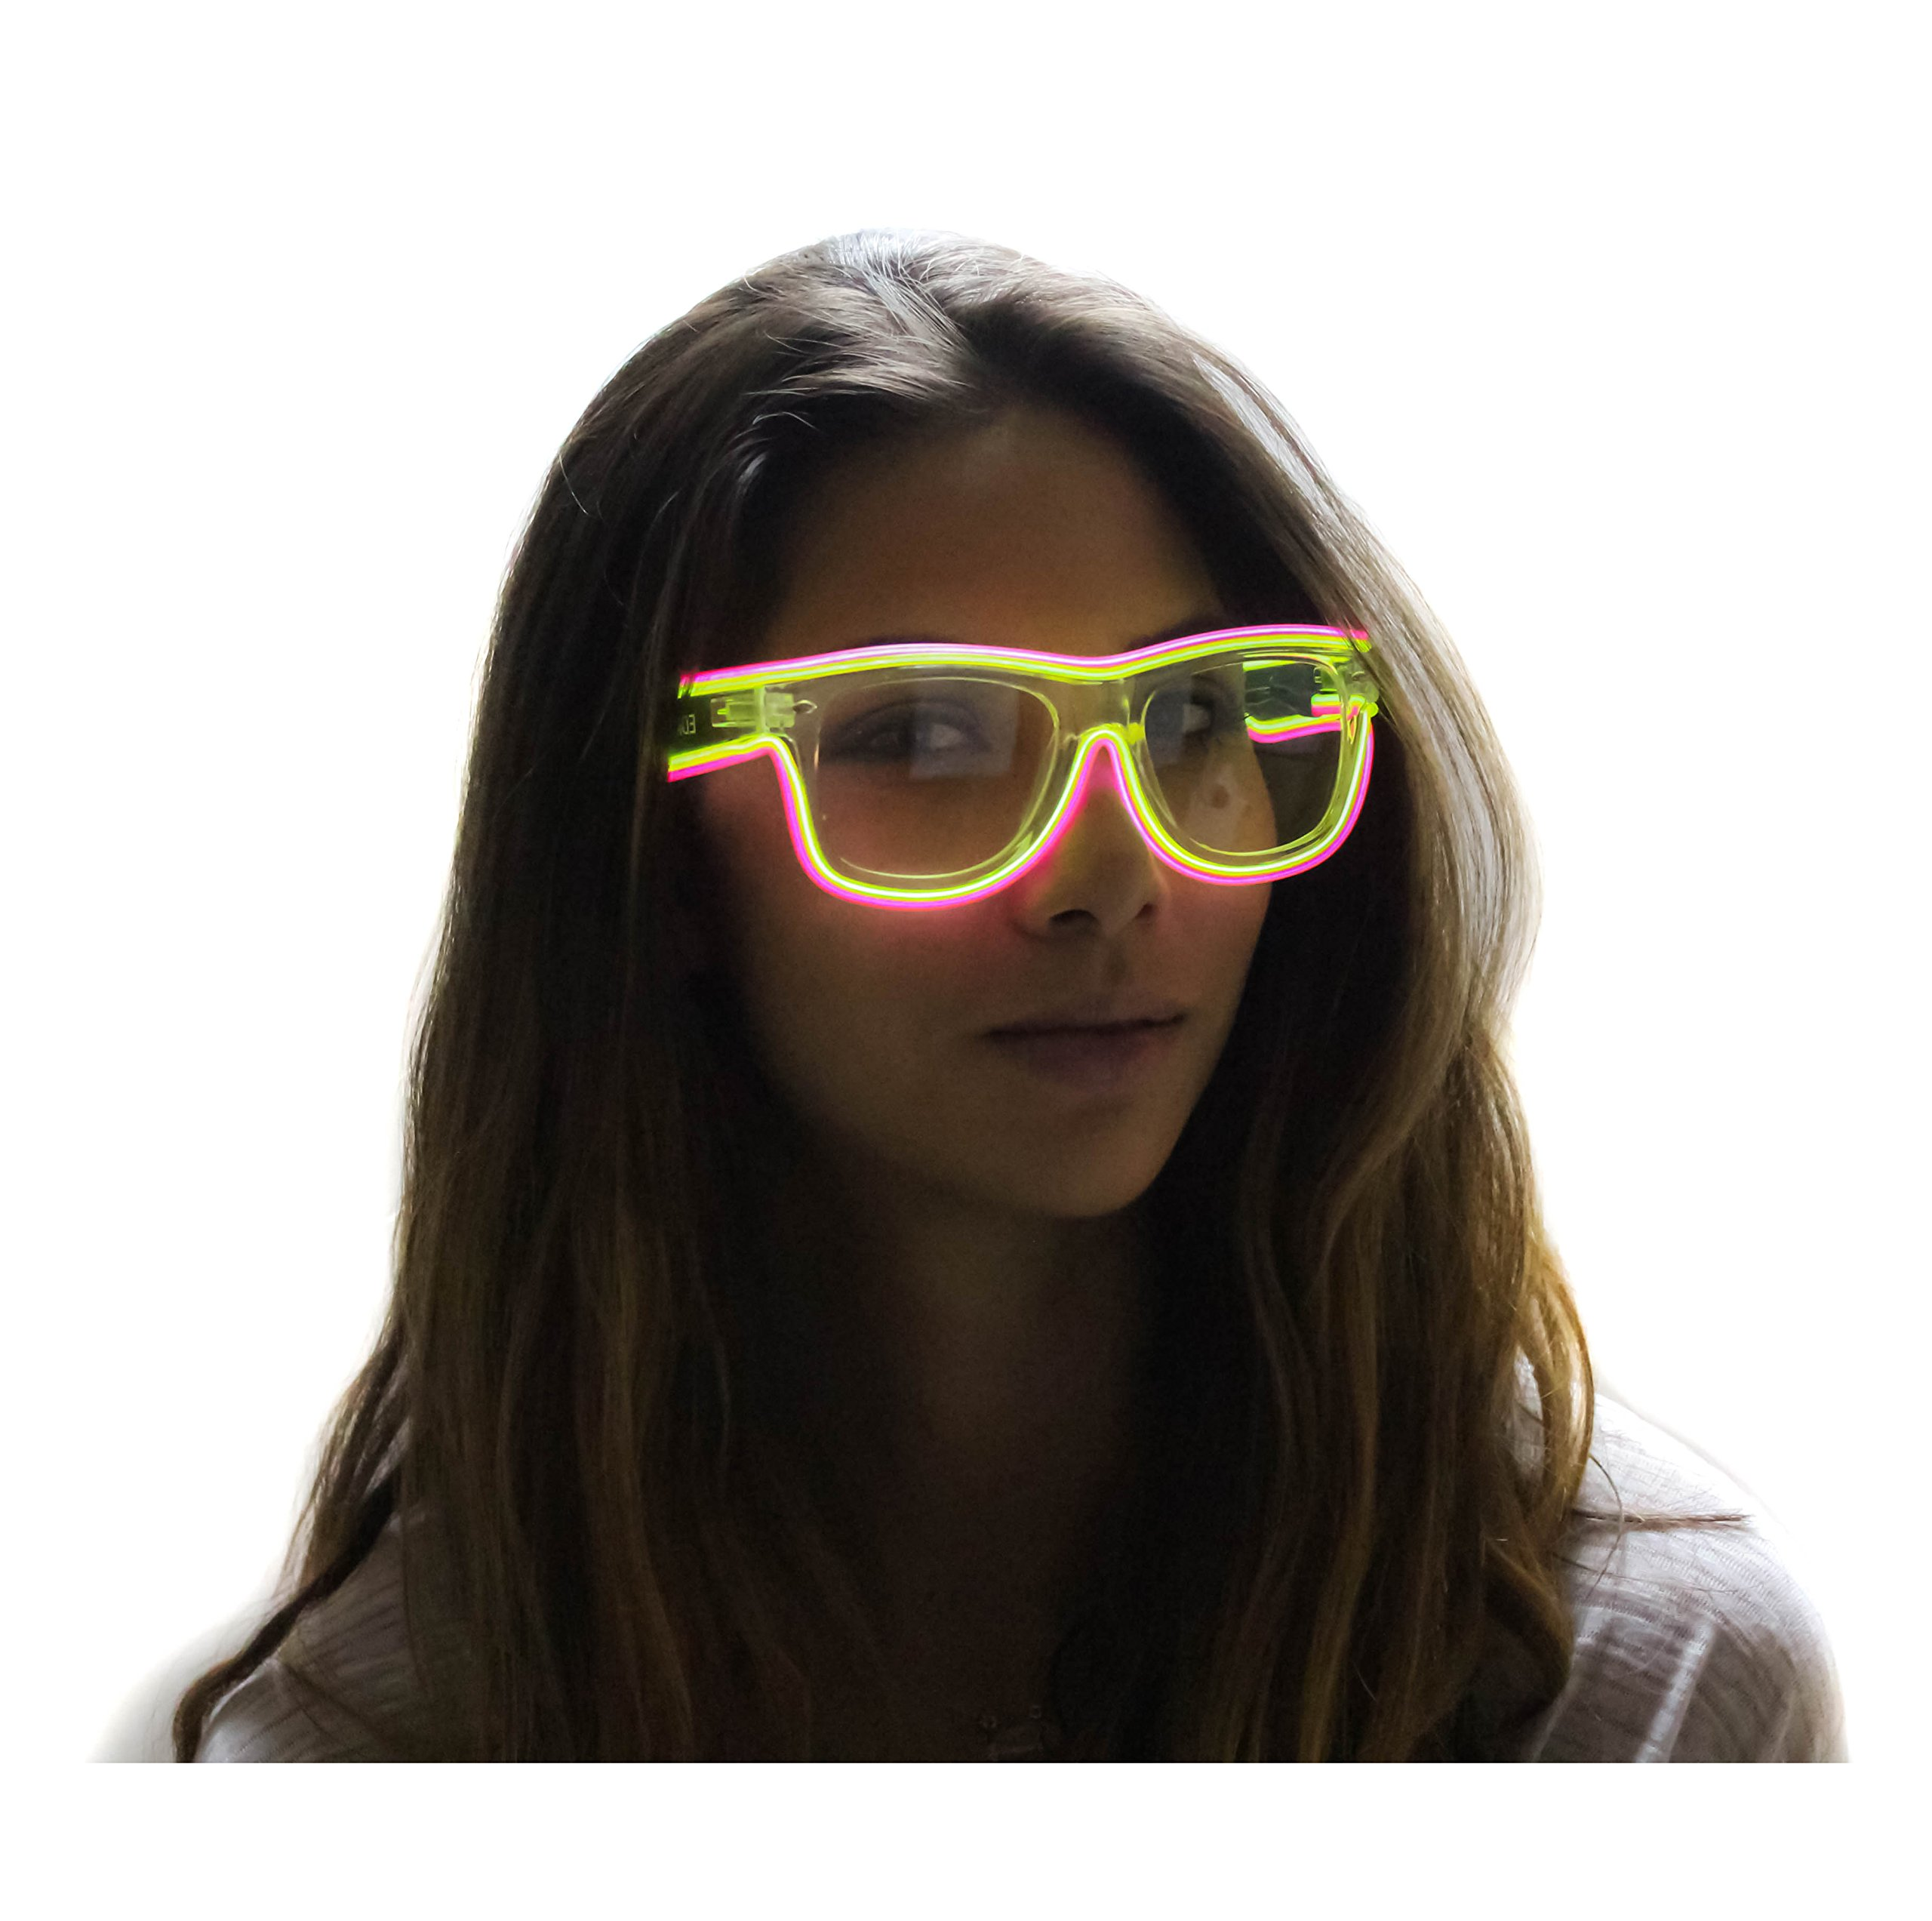 Clear Frame El Wire Glasses - Light Up Glasses - Rave Glasses (Green/Pink Double El Wire) by EDMPlug